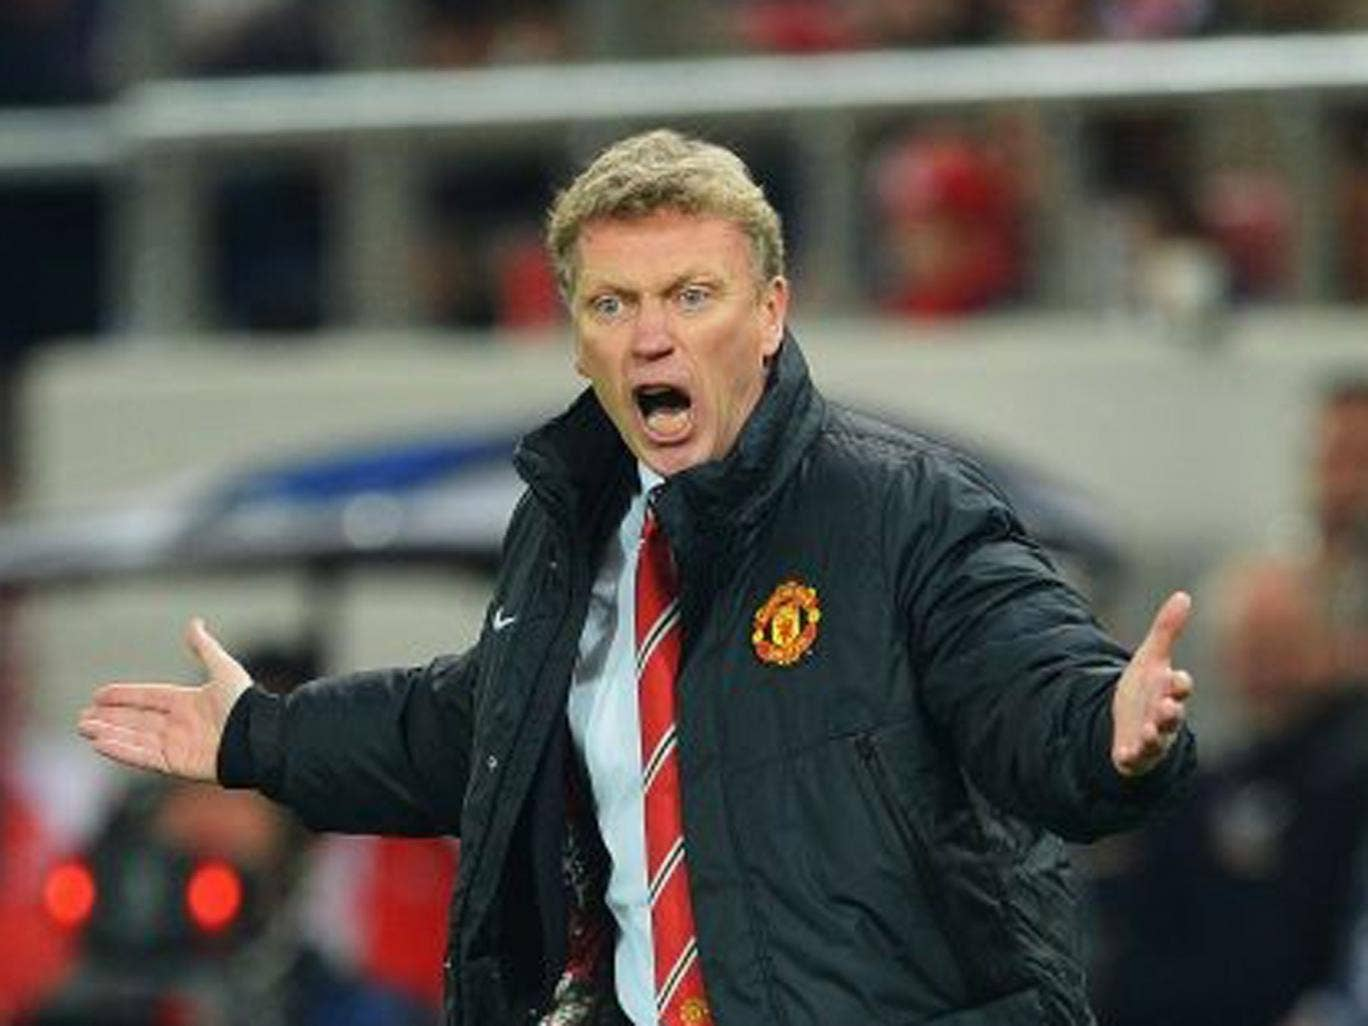 David Moyes reacts on the touchline during the UEFA Champions League Round of 16 first leg match between Olympiacos FC and Manchester United